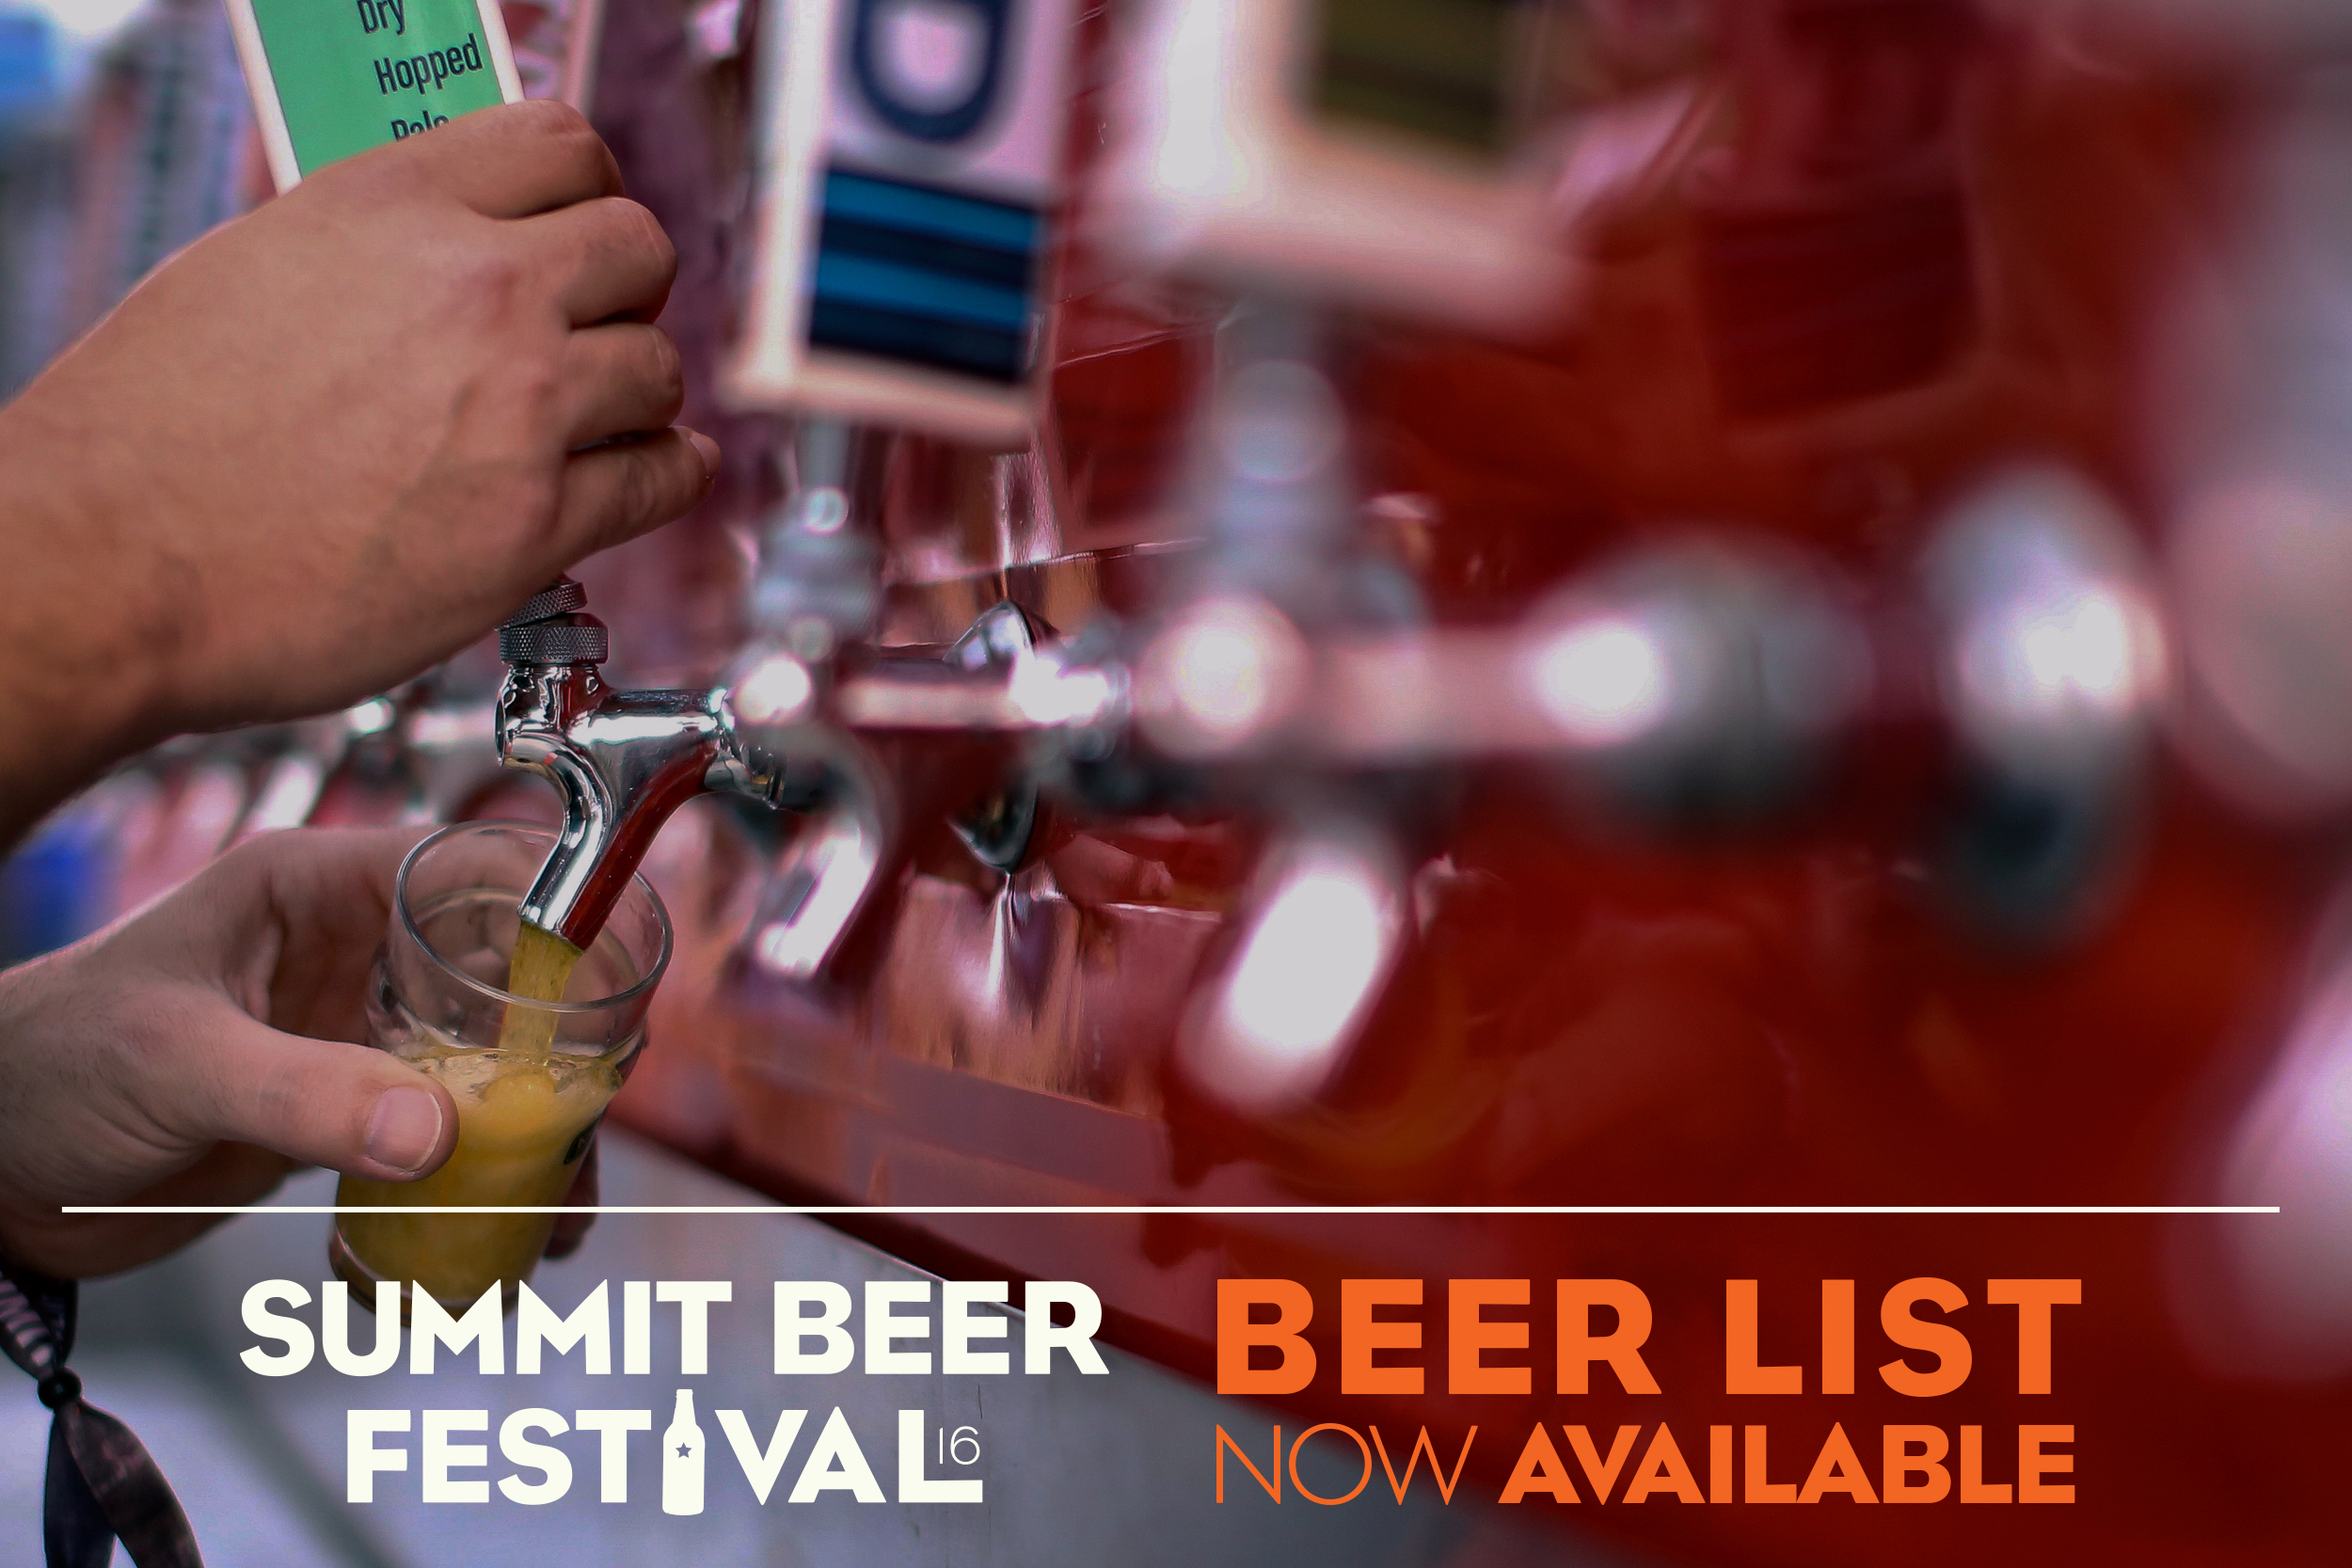 Summit Beer Festival